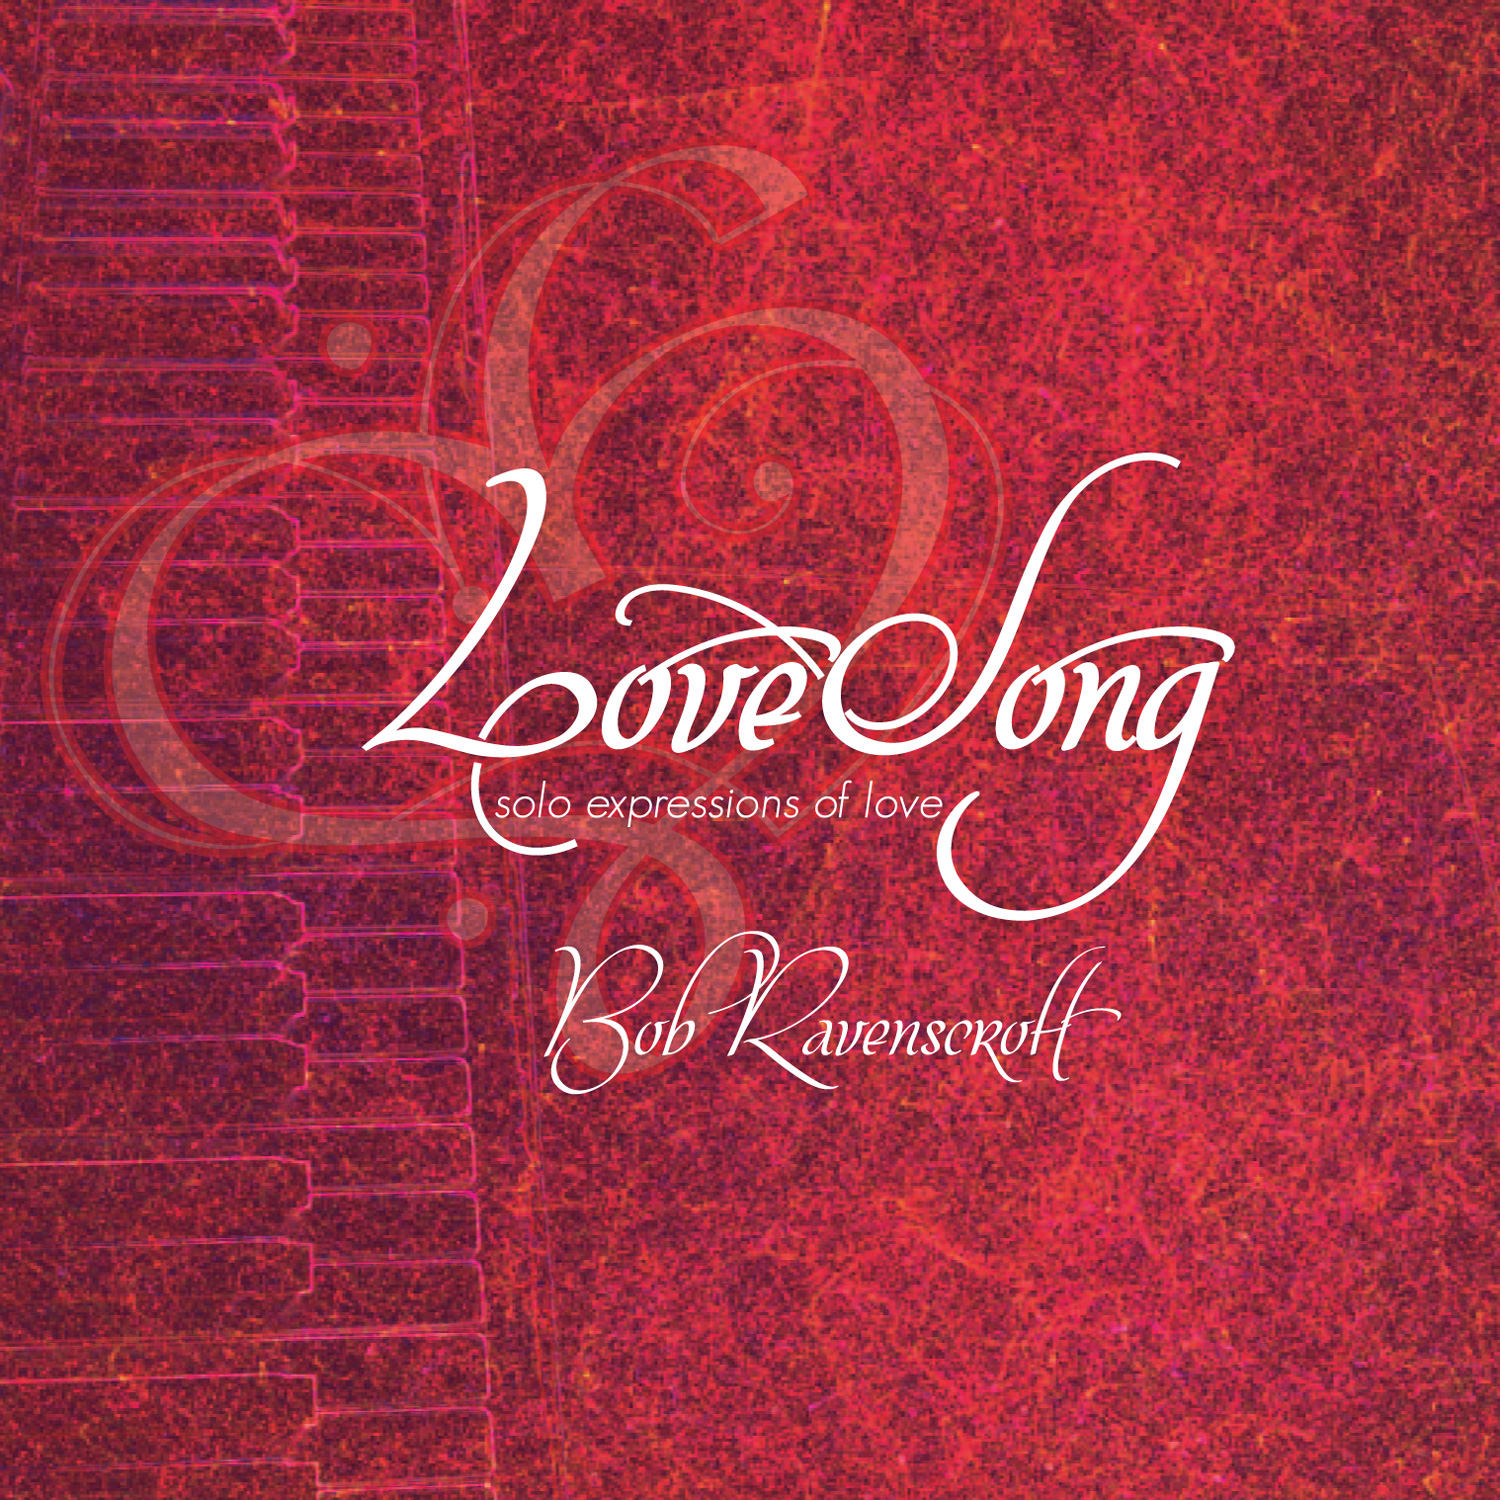 LoveSong-Click to listen/buy